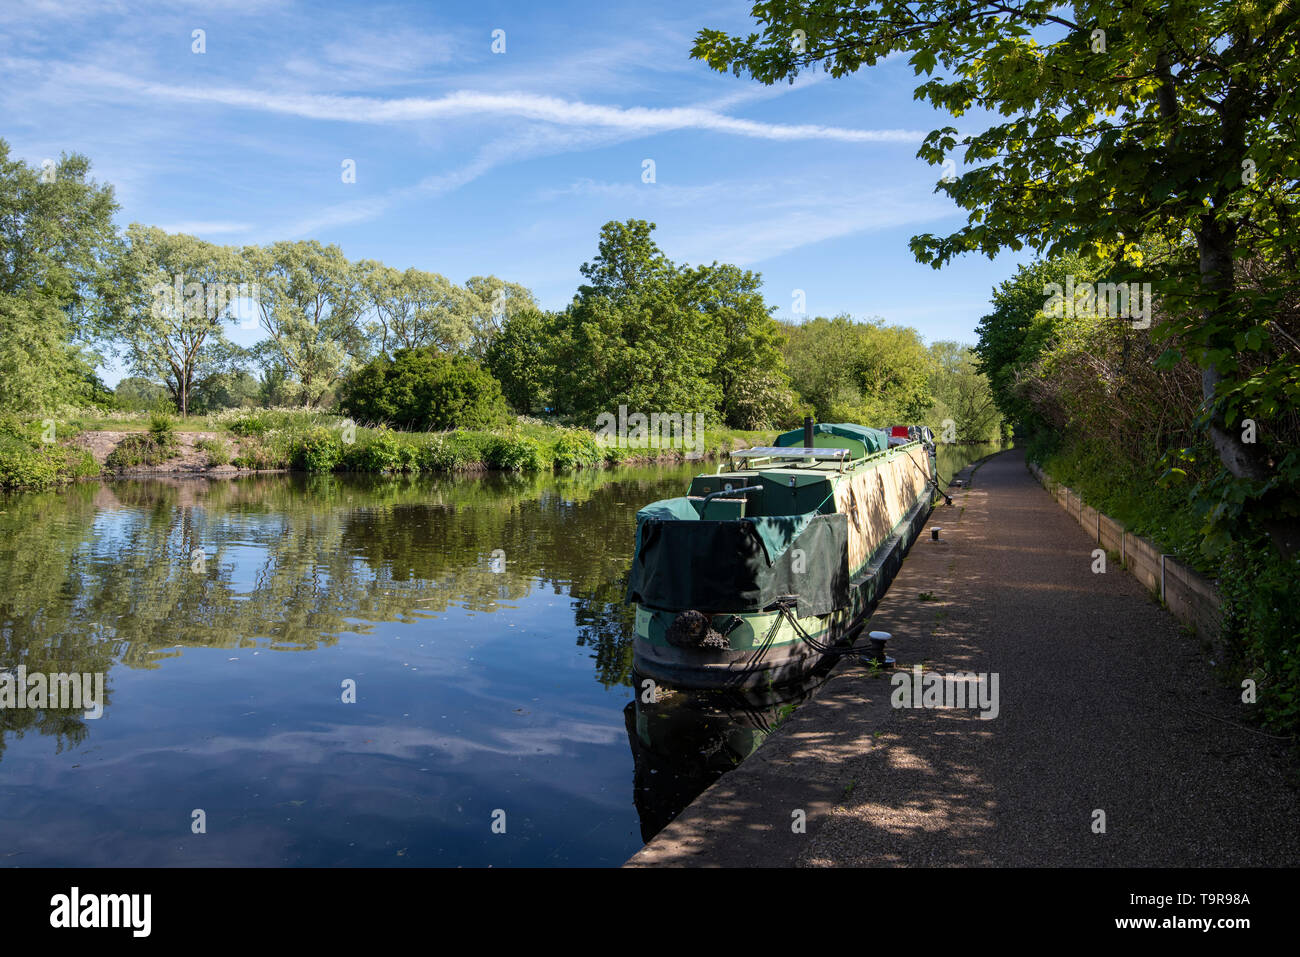 The River Soar at Belgrave in Leicester City, Leicestershire England UK - Stock Image